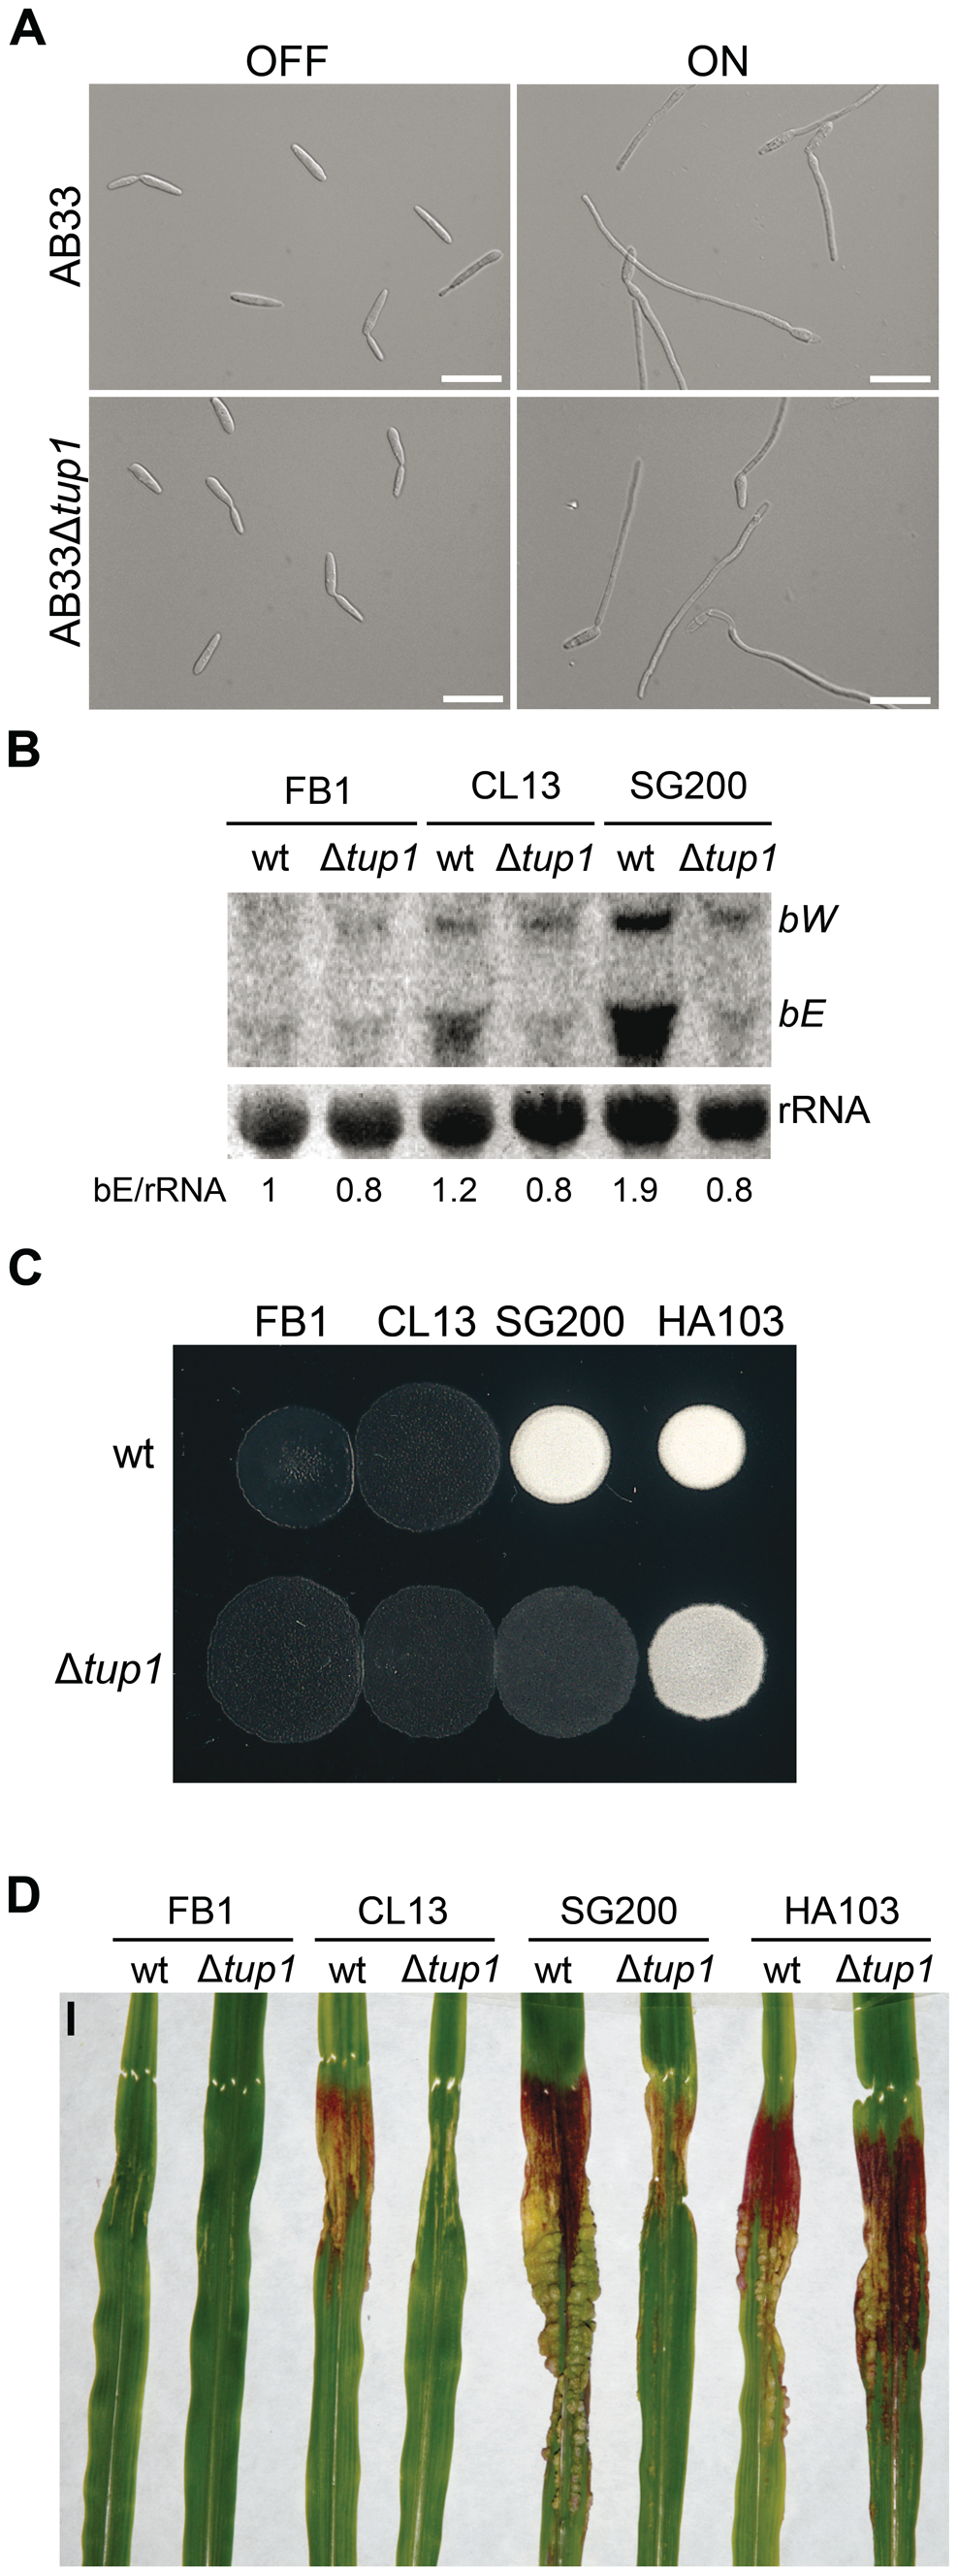 Genetic interaction between <i>tup1</i> and the <i>b</i> mating-type locus.